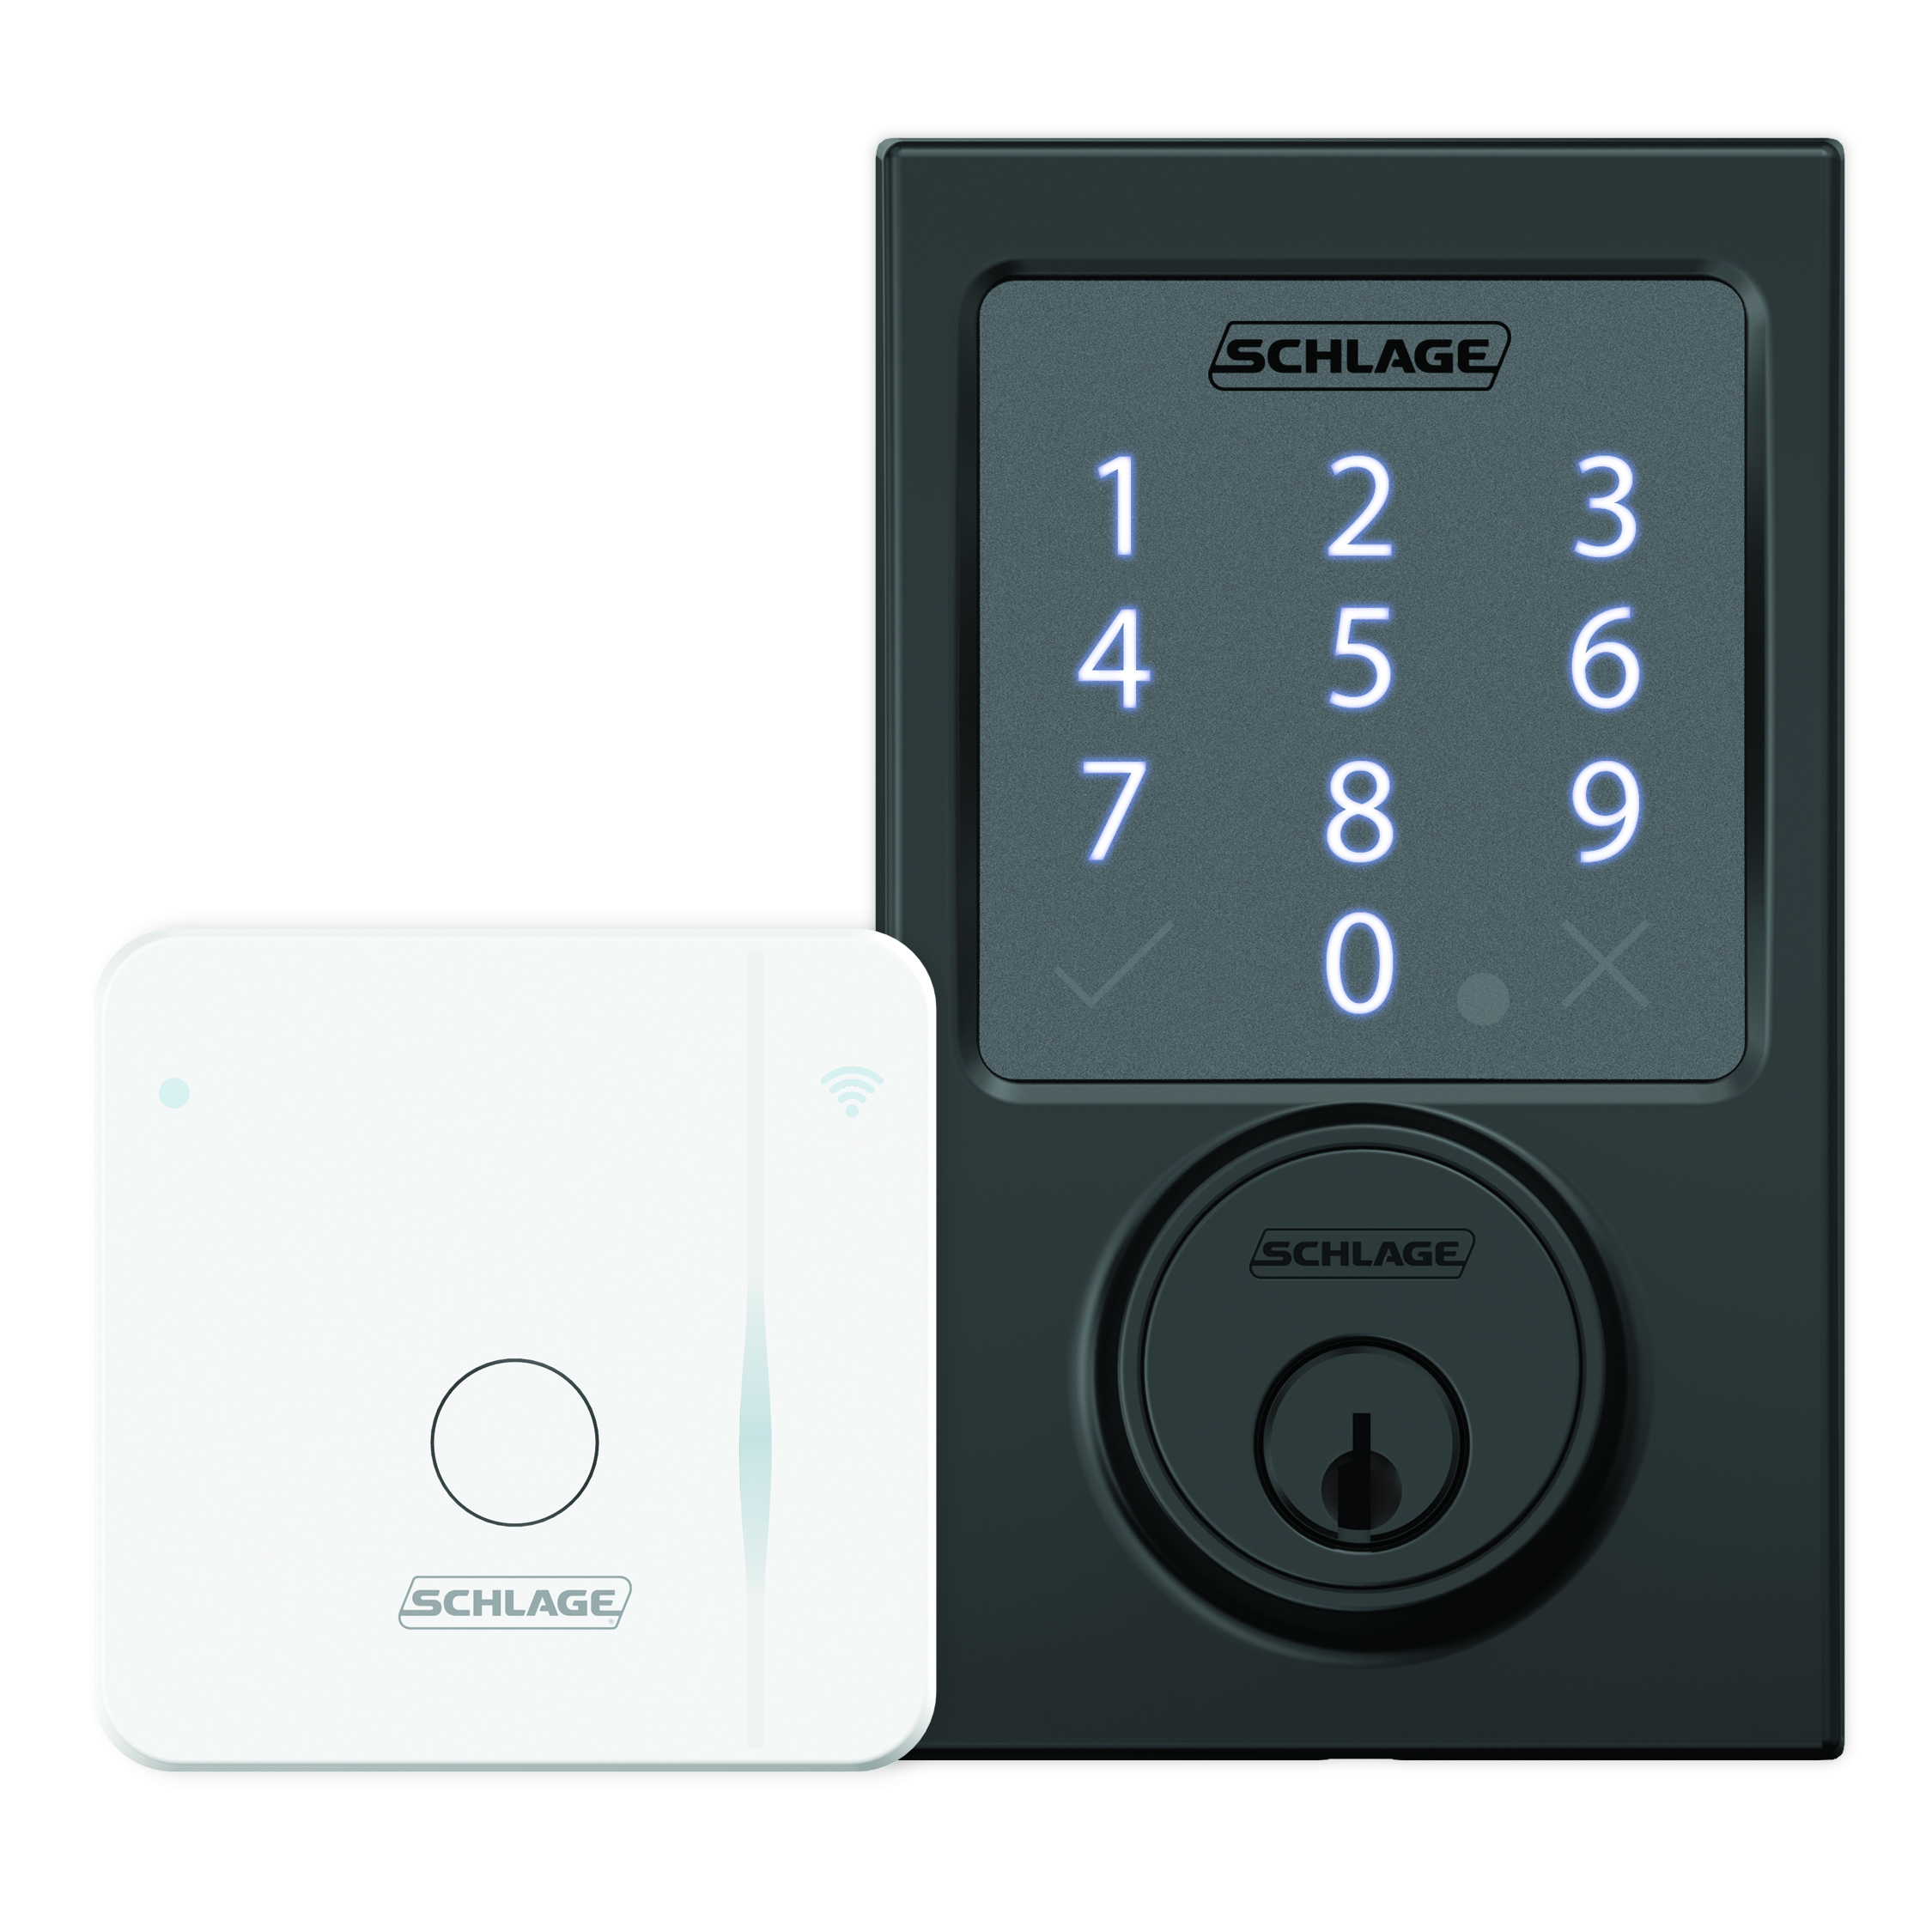 Schlage Updates Smart Deadbolt With Remote Locking